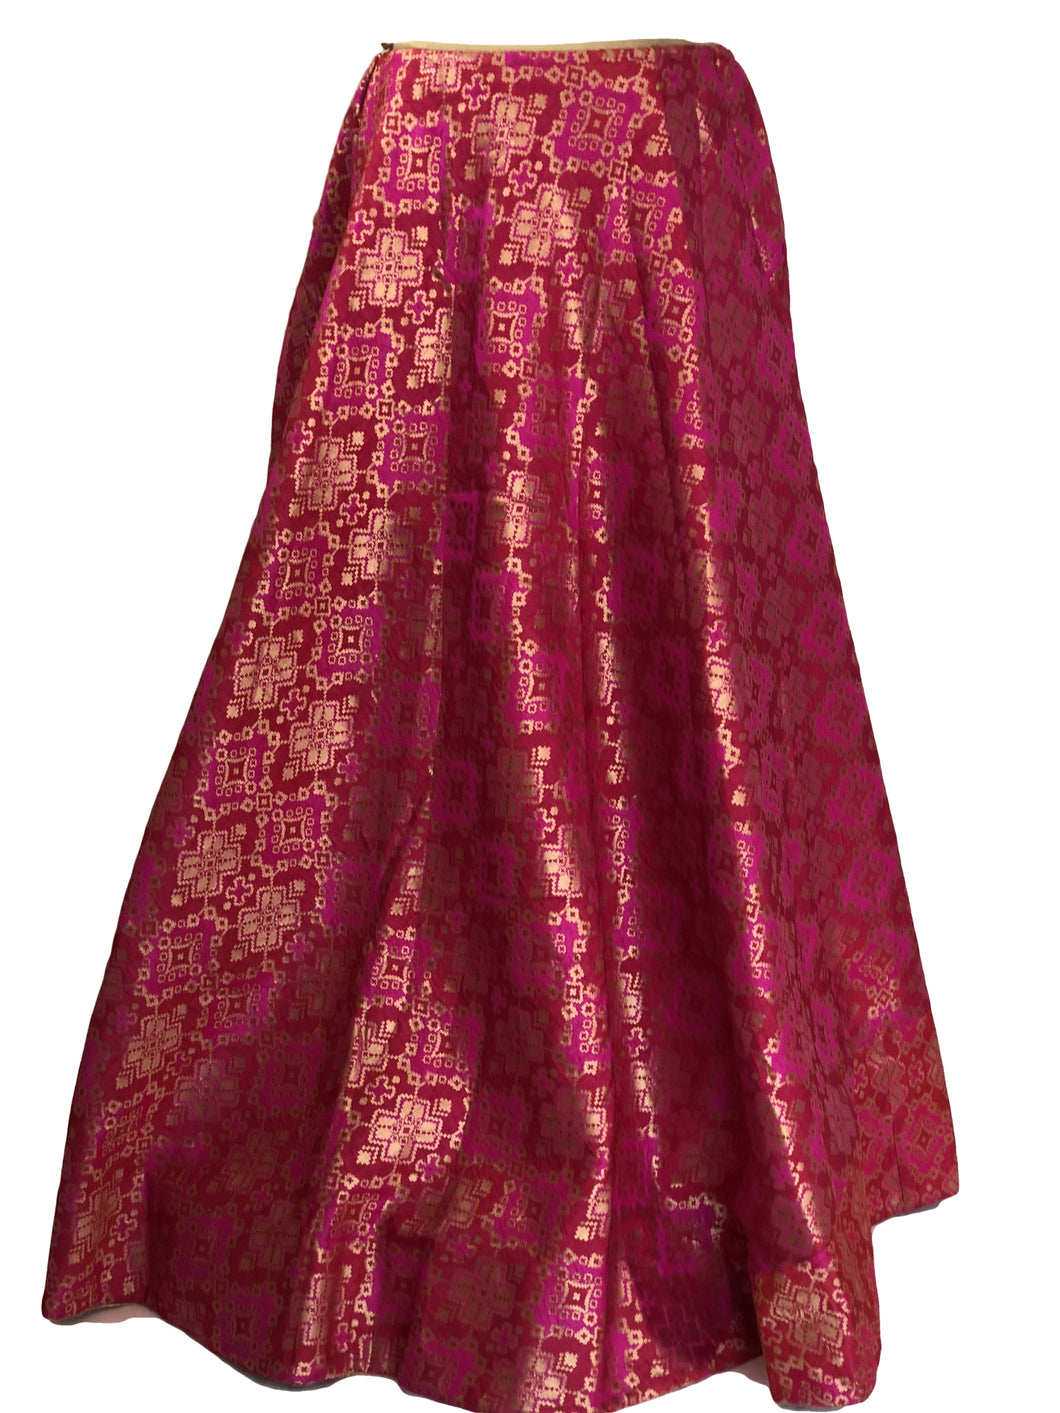 Pure Brocade Silk Skirt in Dark Pink color, Size - Free Size - Long